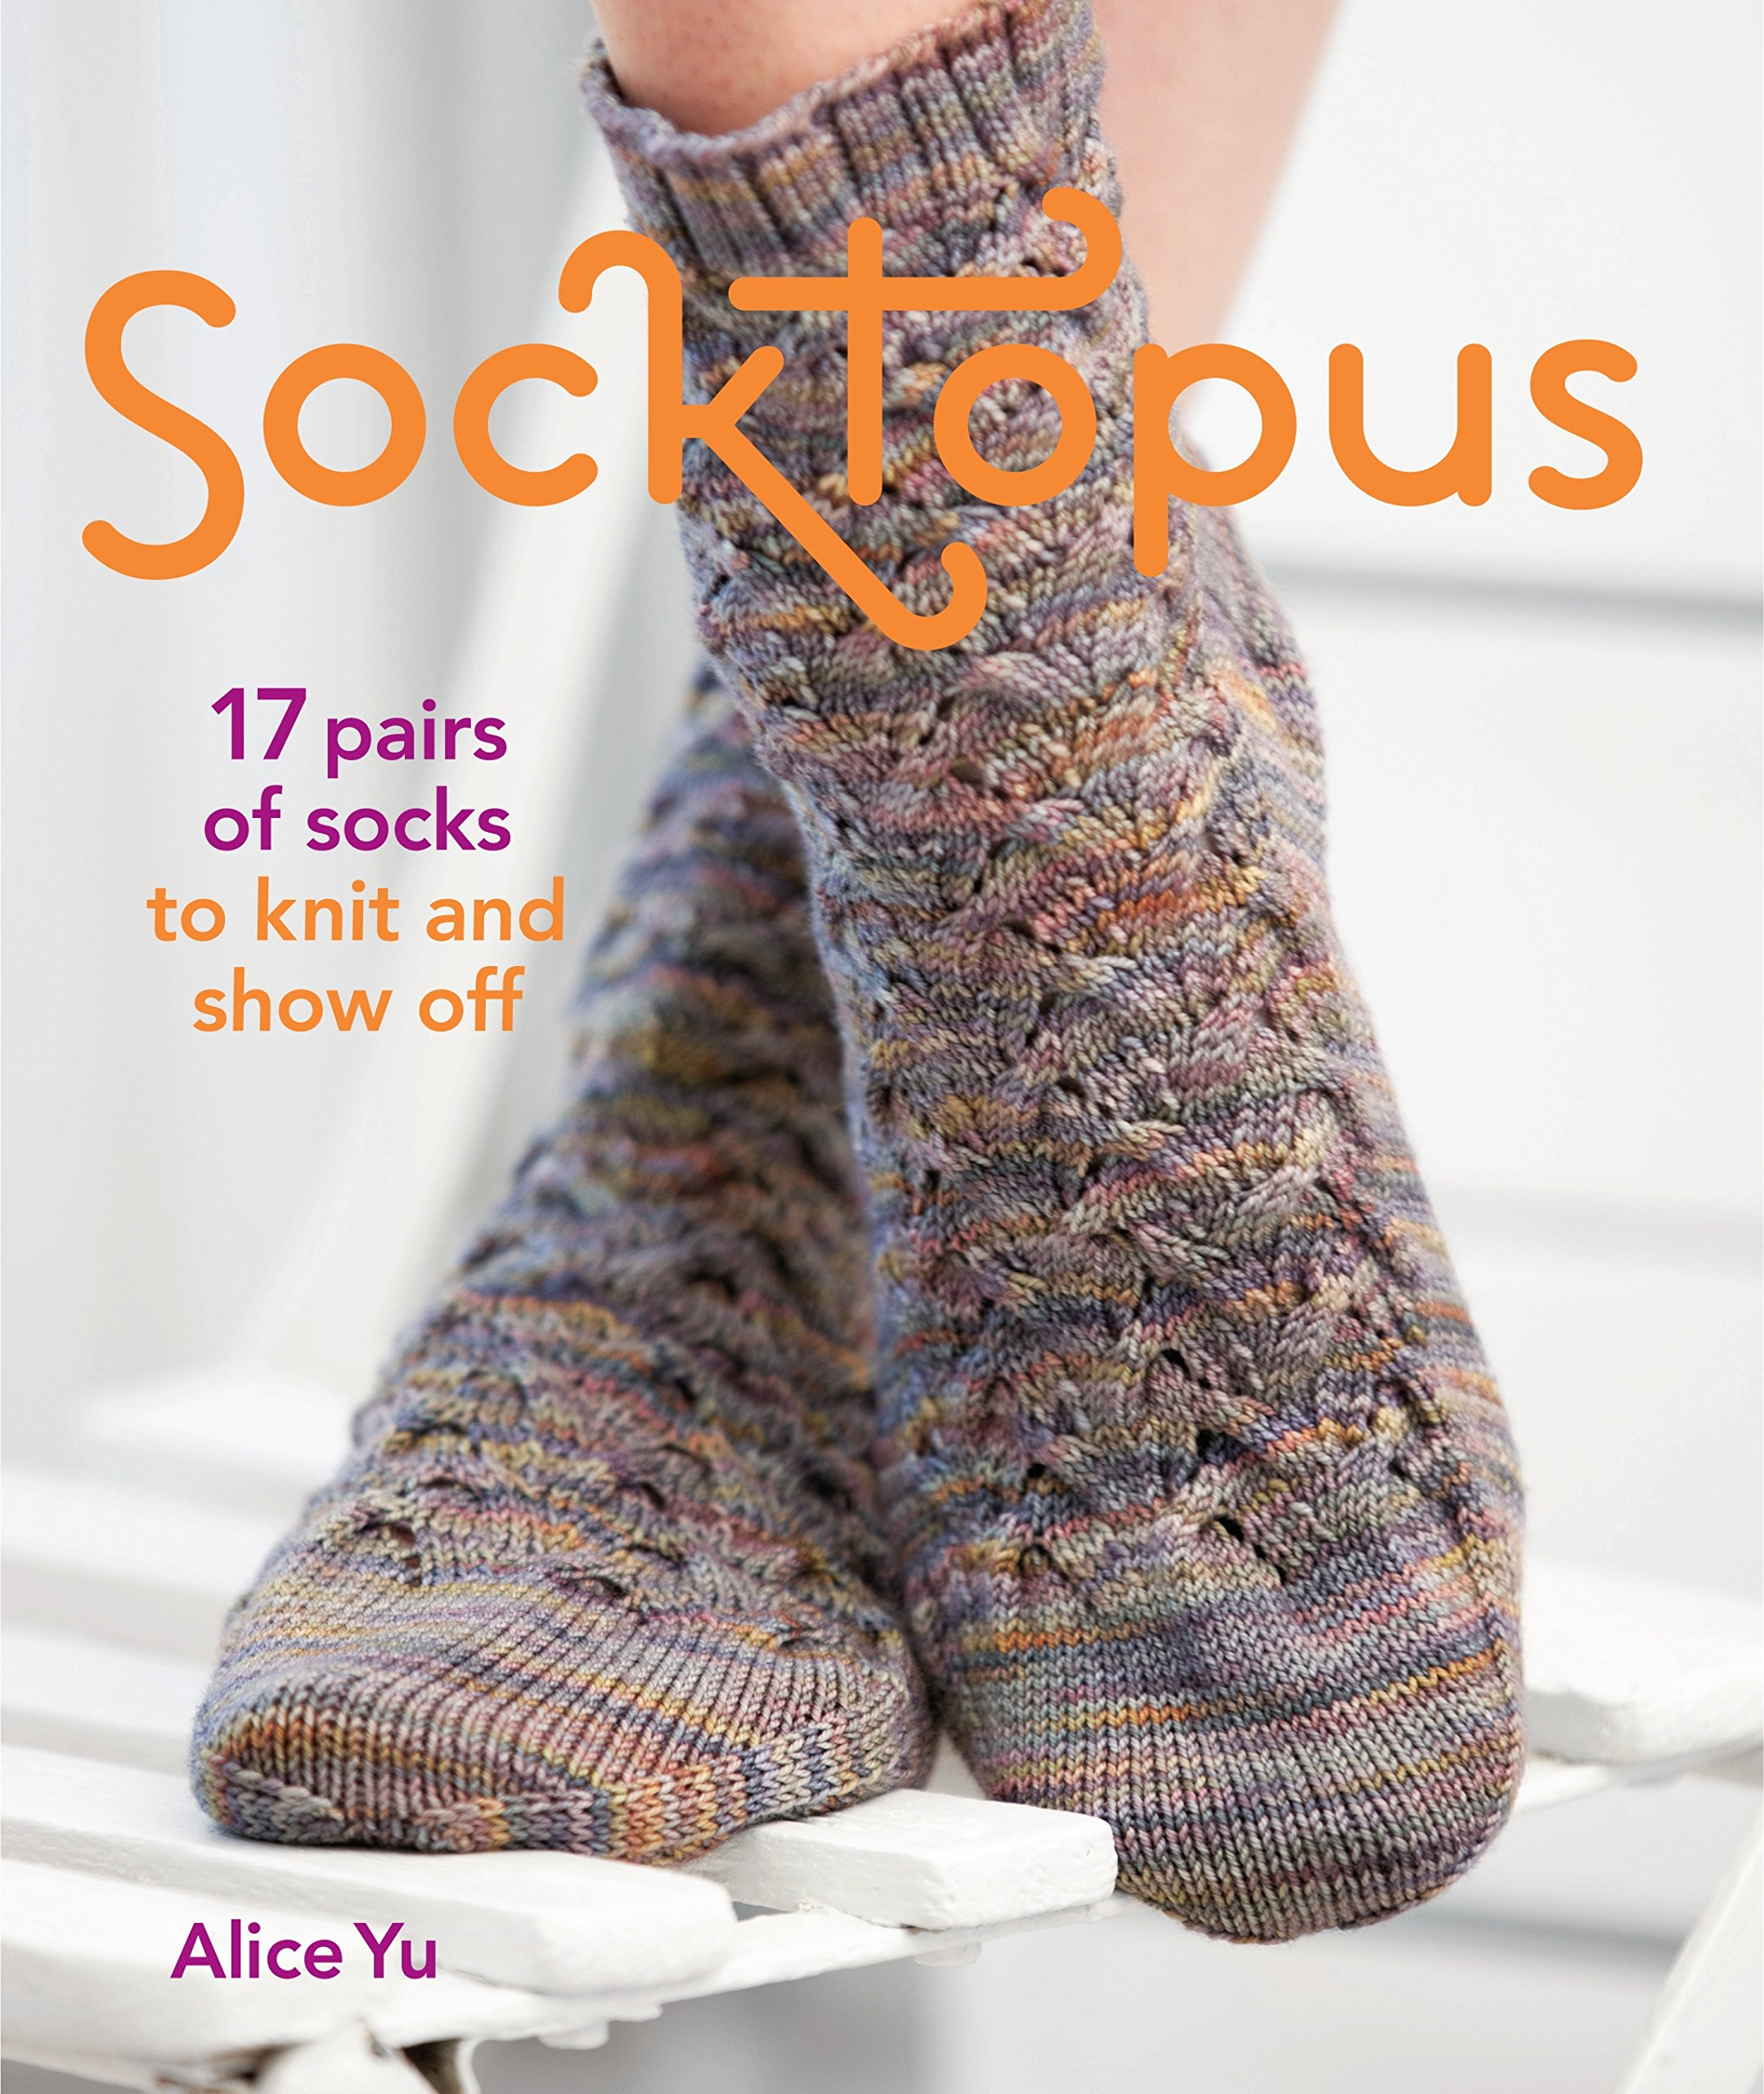 Socktopus: 17 Pairs of Socks to Knit and Show Off: Alice Yu ...